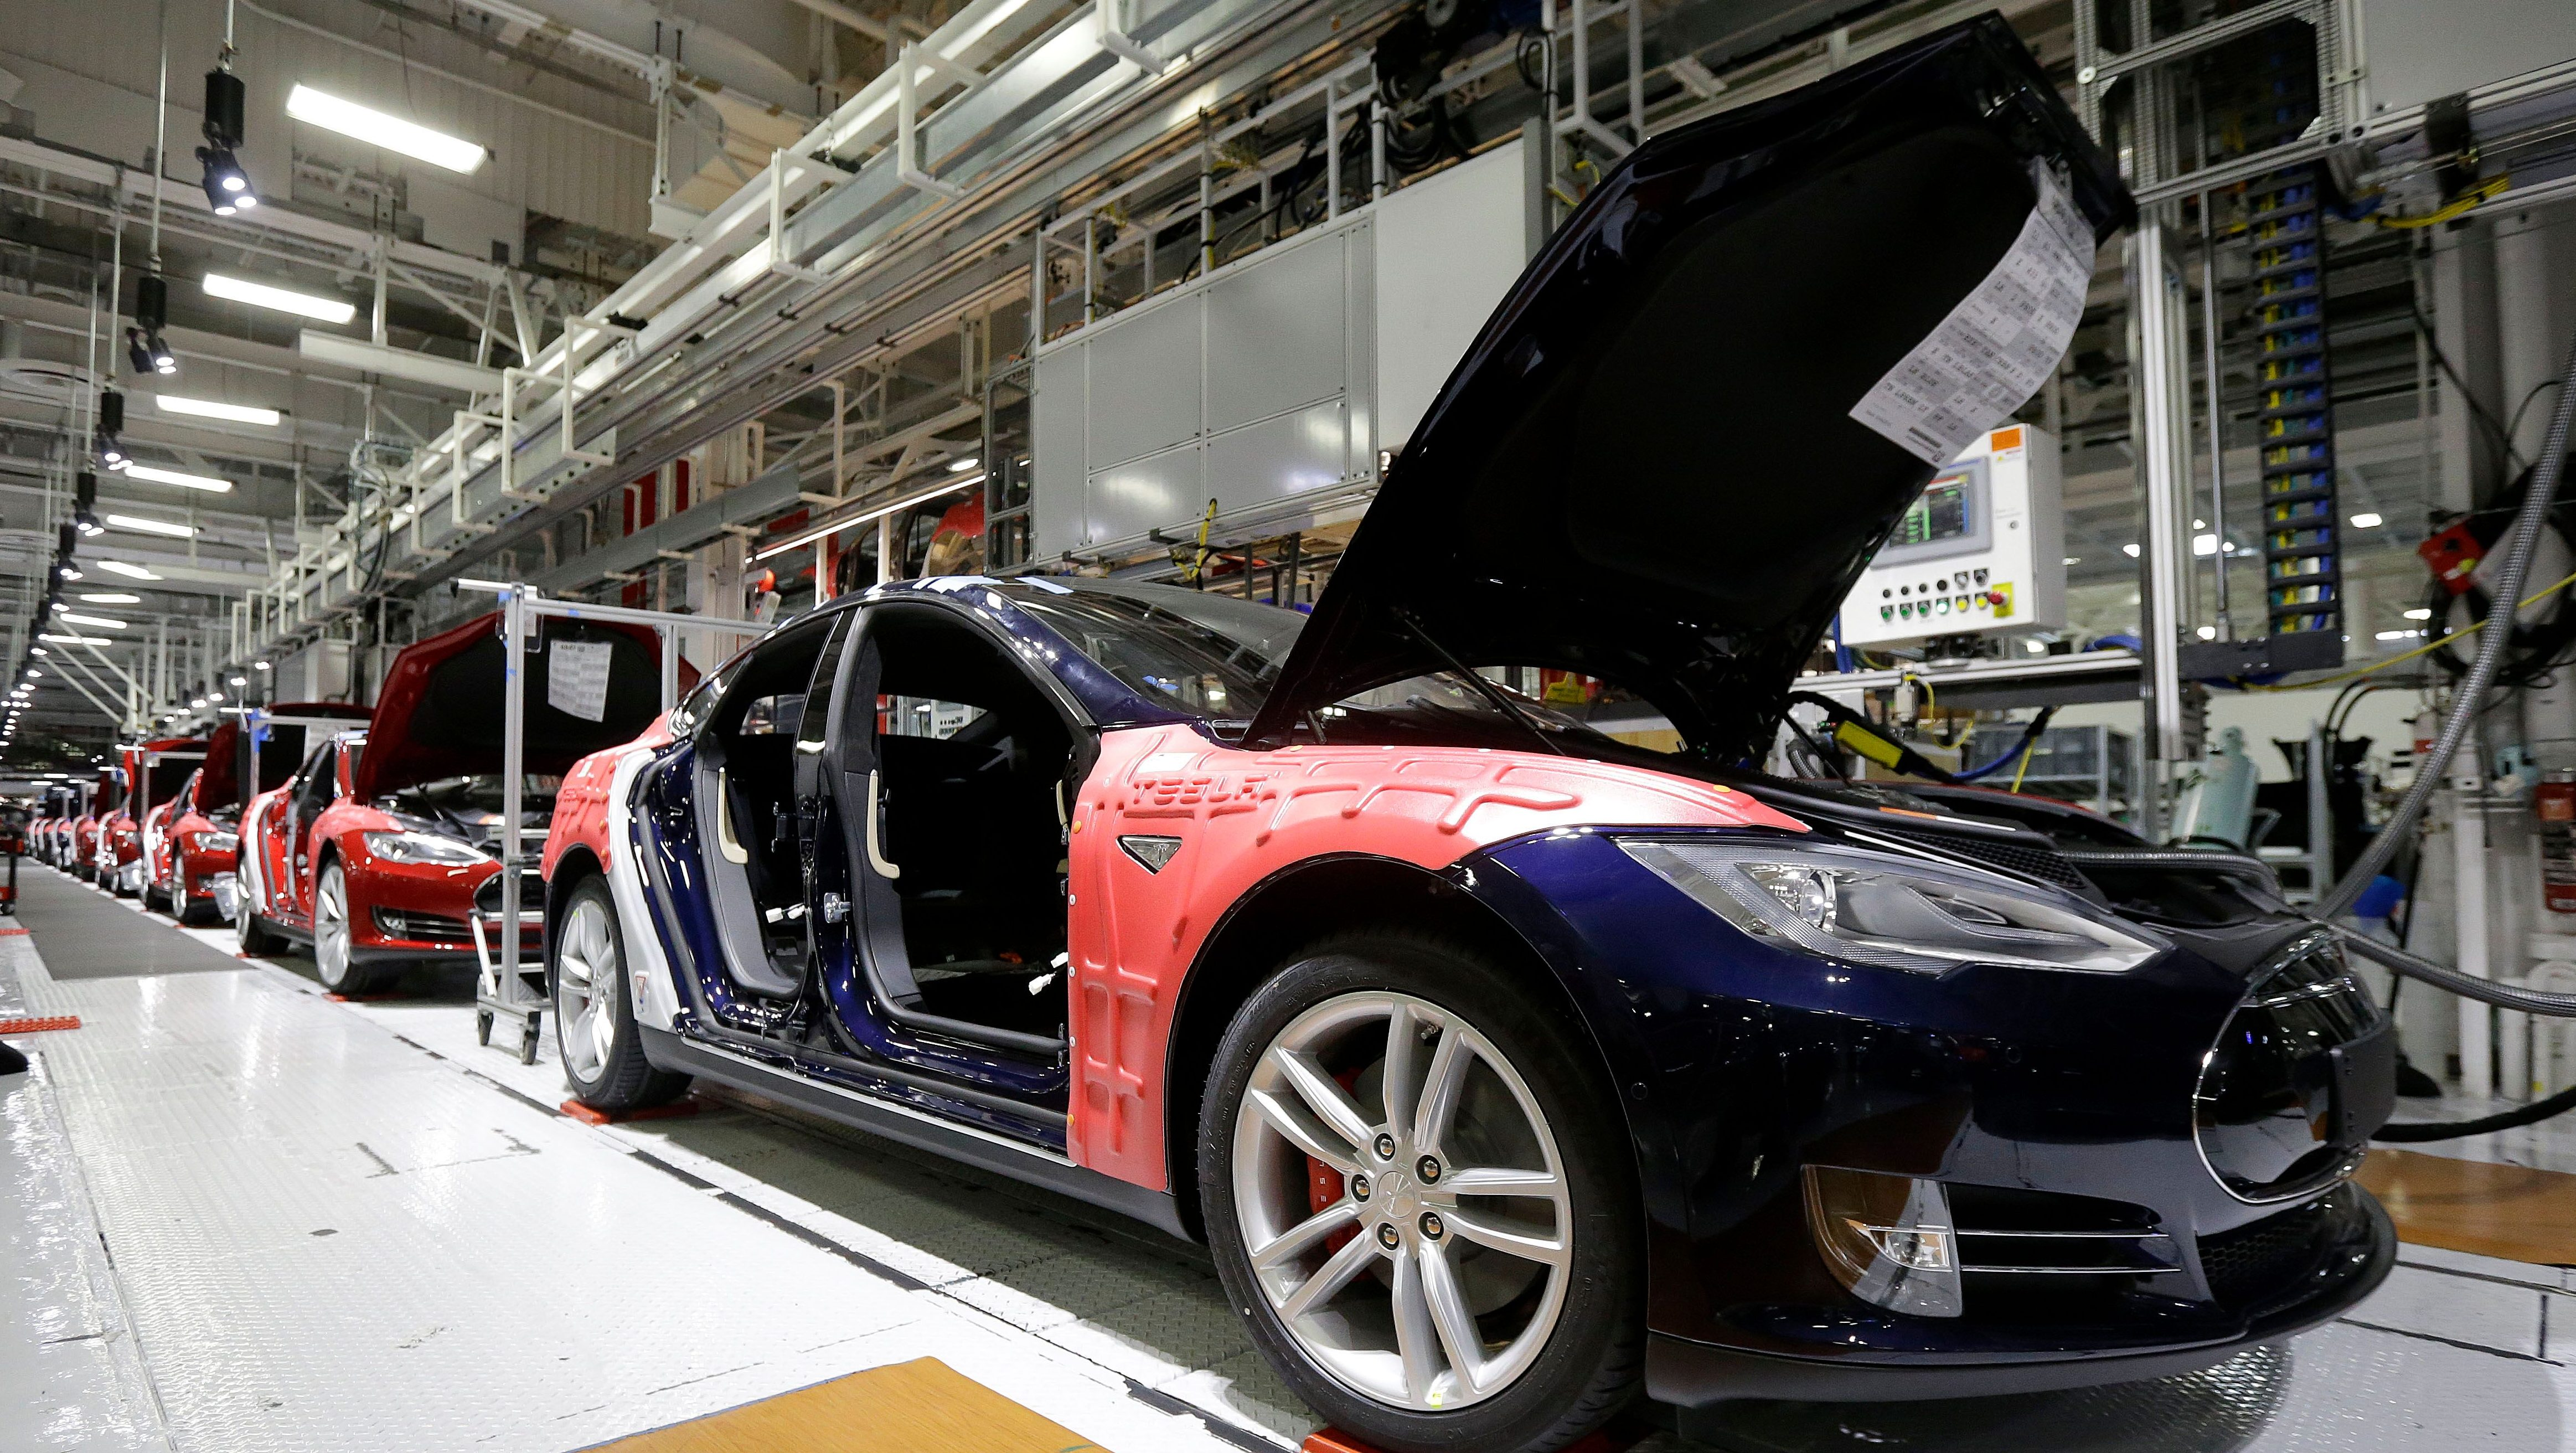 FILE - In this May 14, 2015, file photo, Tesla Model S cars are shown in the Tesla factory in Fremont, Calif. Tesla's second-quarter deliveries surged 52 percent to set a company record exceeding 11,000 vehicles, the electric car maker said Thursday, July 2, 2015. (AP Photo/Jeff Chiu, File)